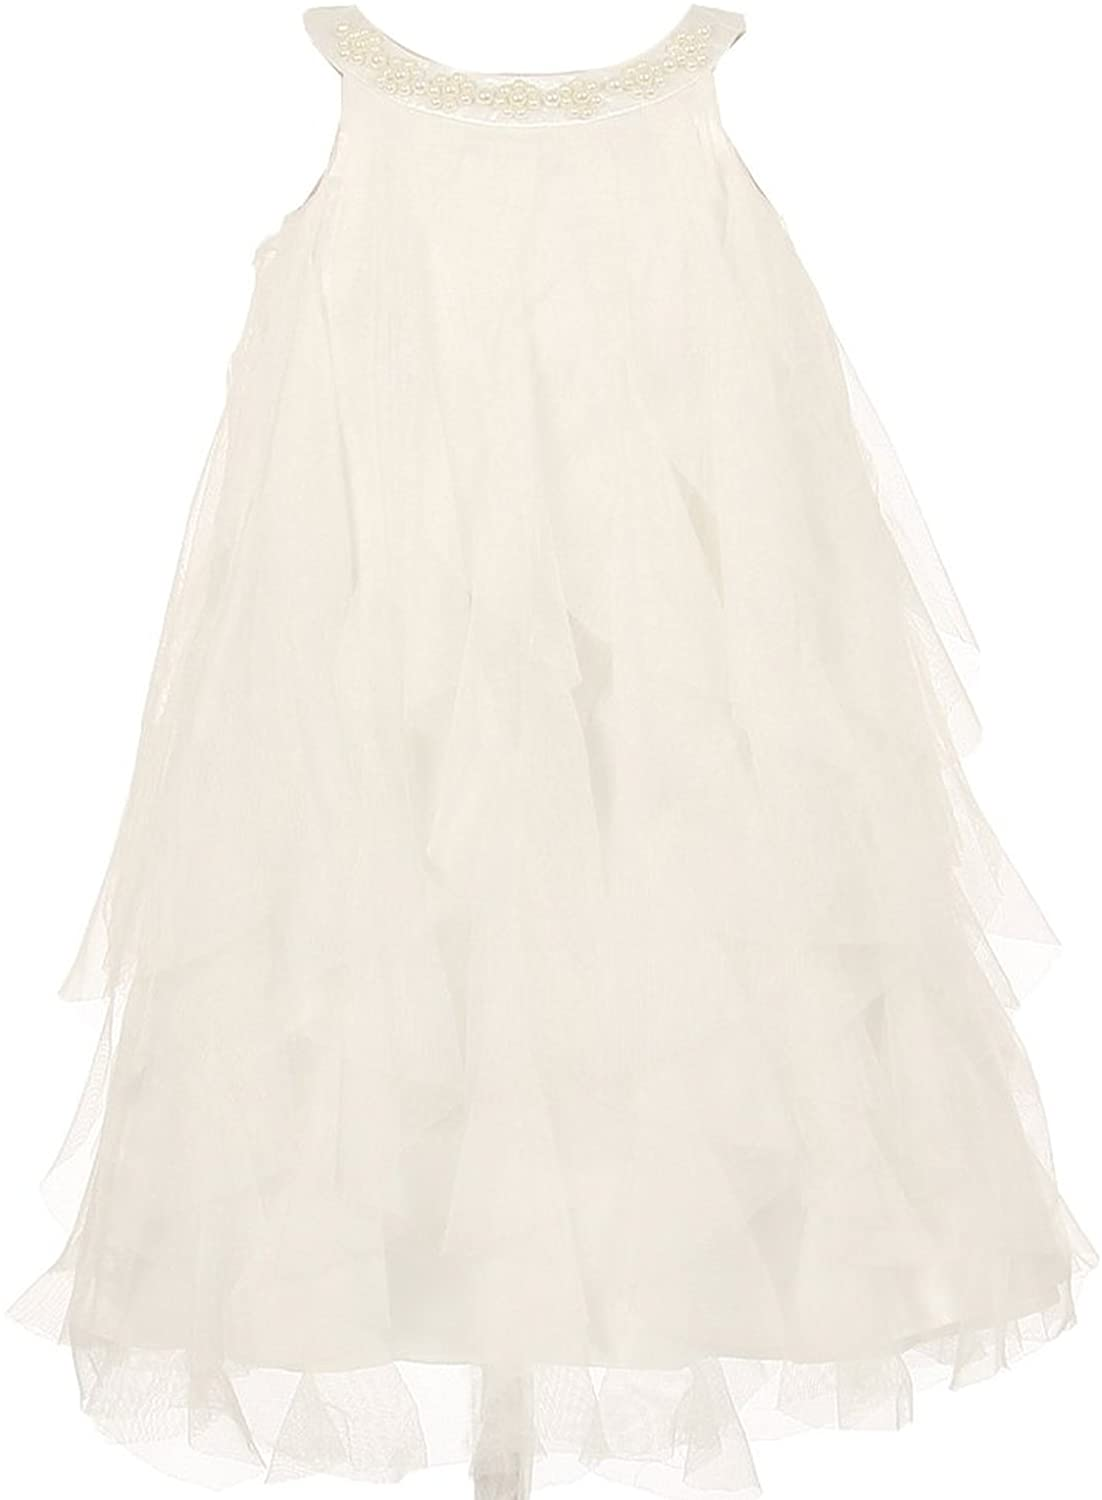 Kids Dream Mesh Ruffle Dress with Pearl Beading Ivory-4